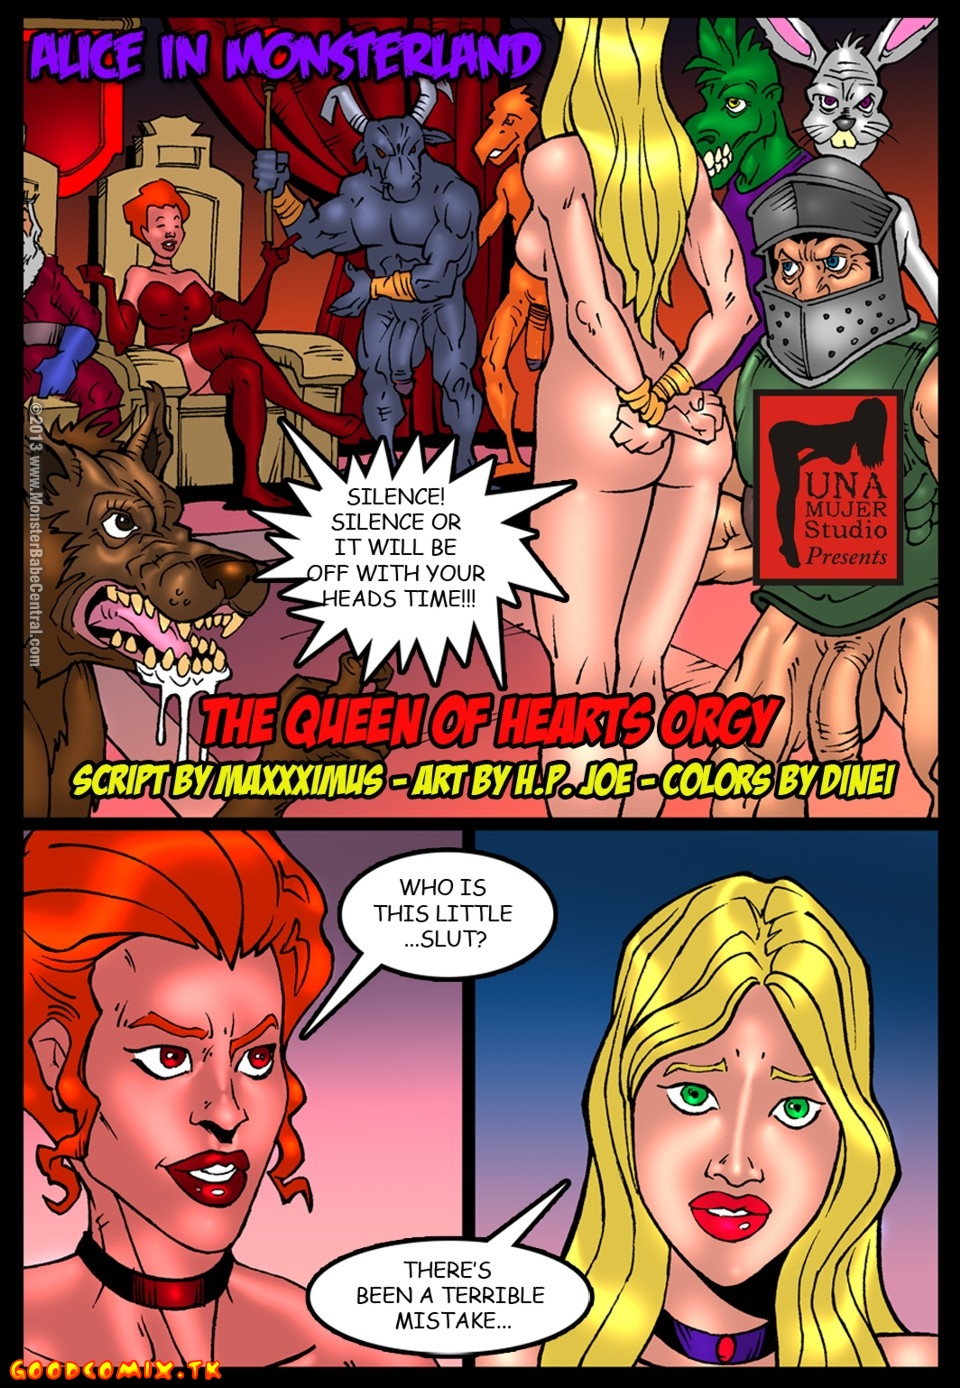 Goodcomix.tk Alice in Wonderland - [MonsterBabeCentral] - Alice in Monsterland 07 - The Queen Of Hearts Orgy